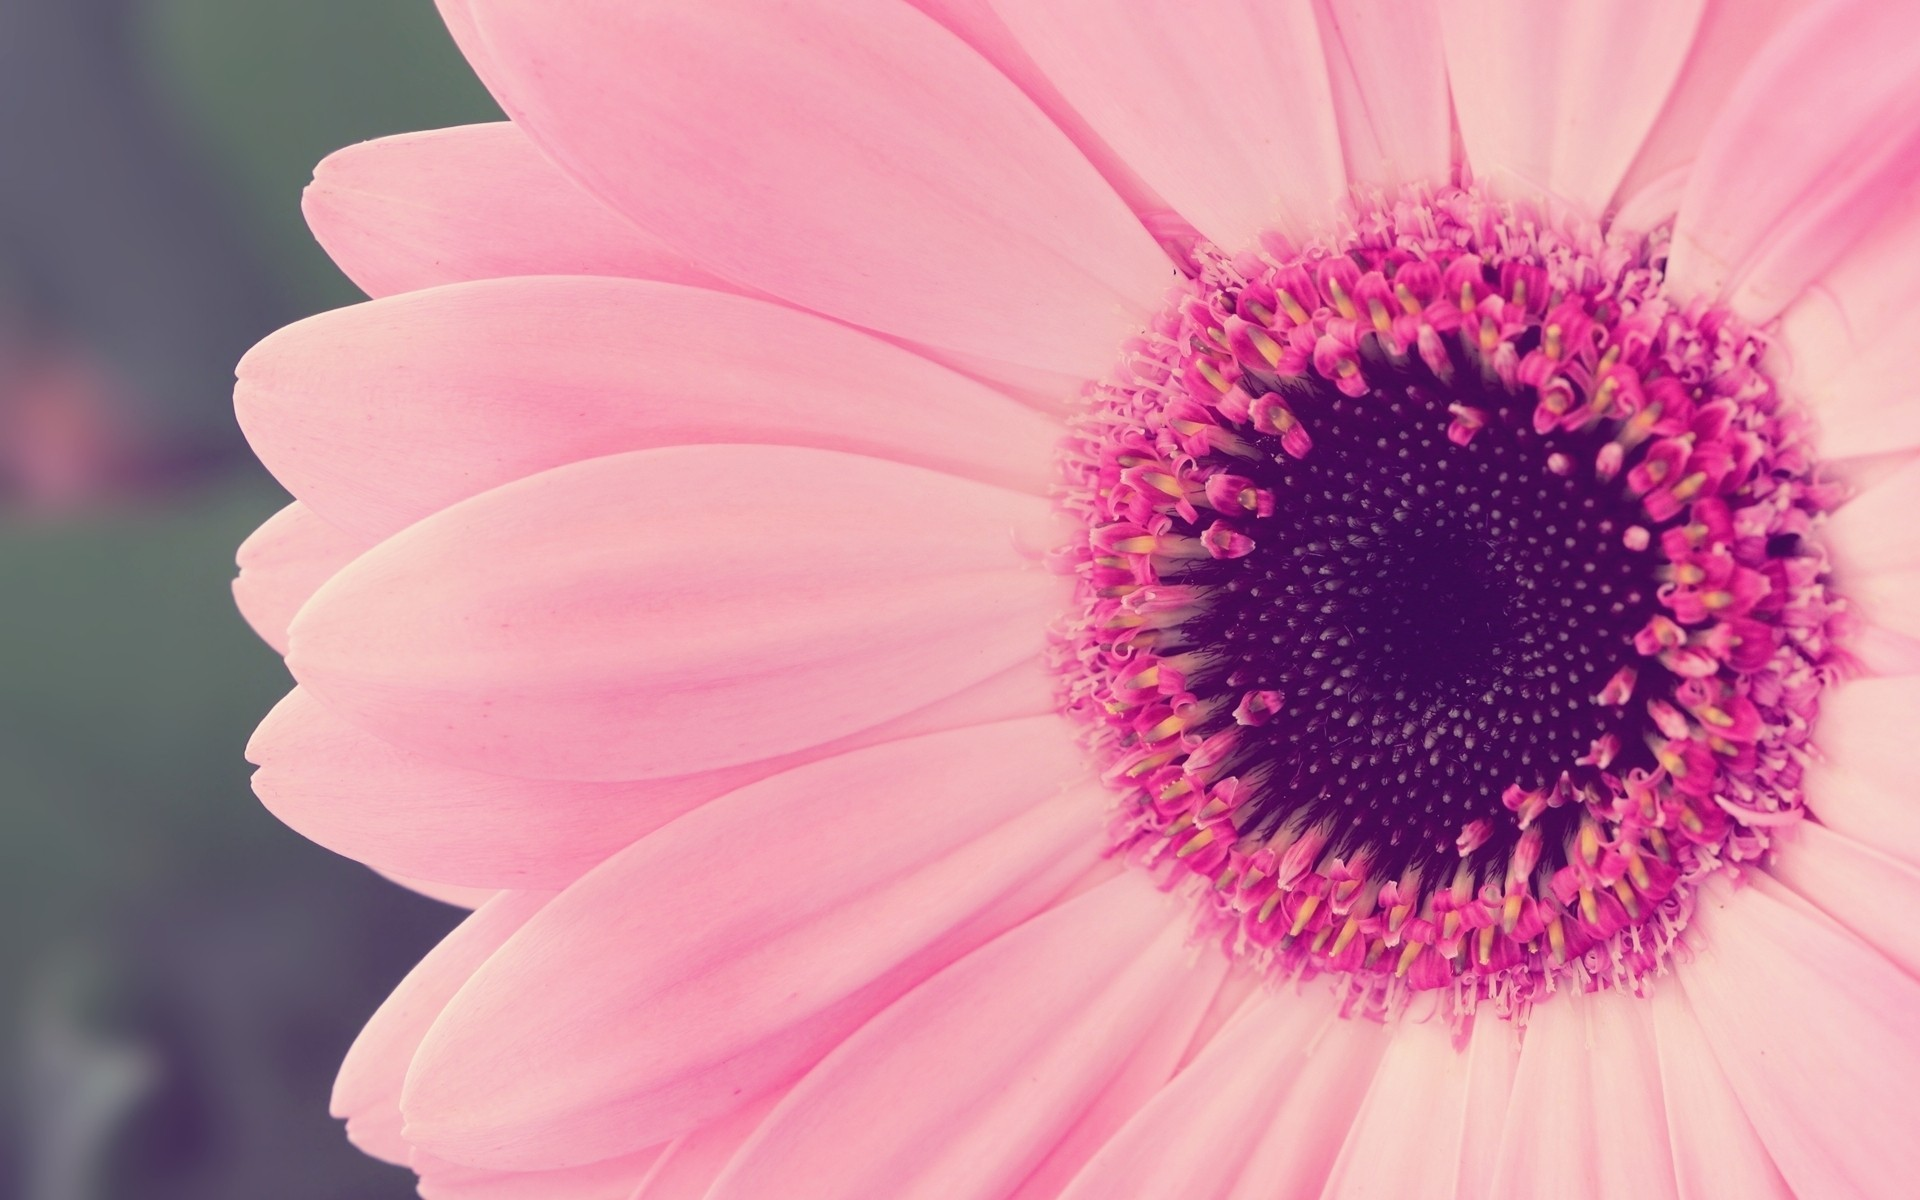 pink background tumblr download free amazing hd backgrounds for